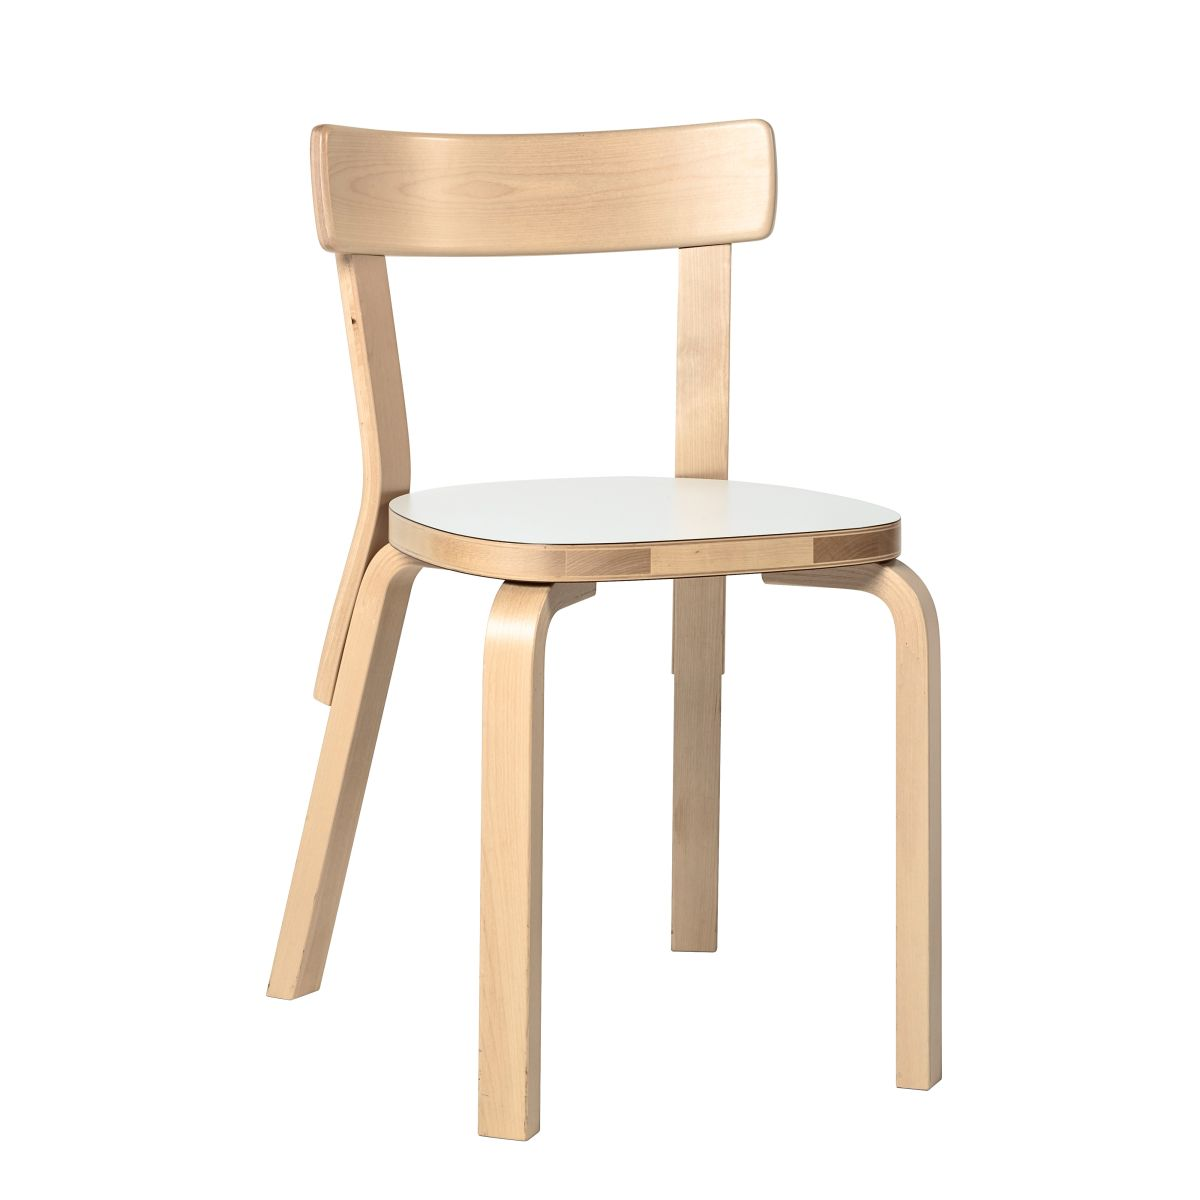 Chair-69-White-Laminate